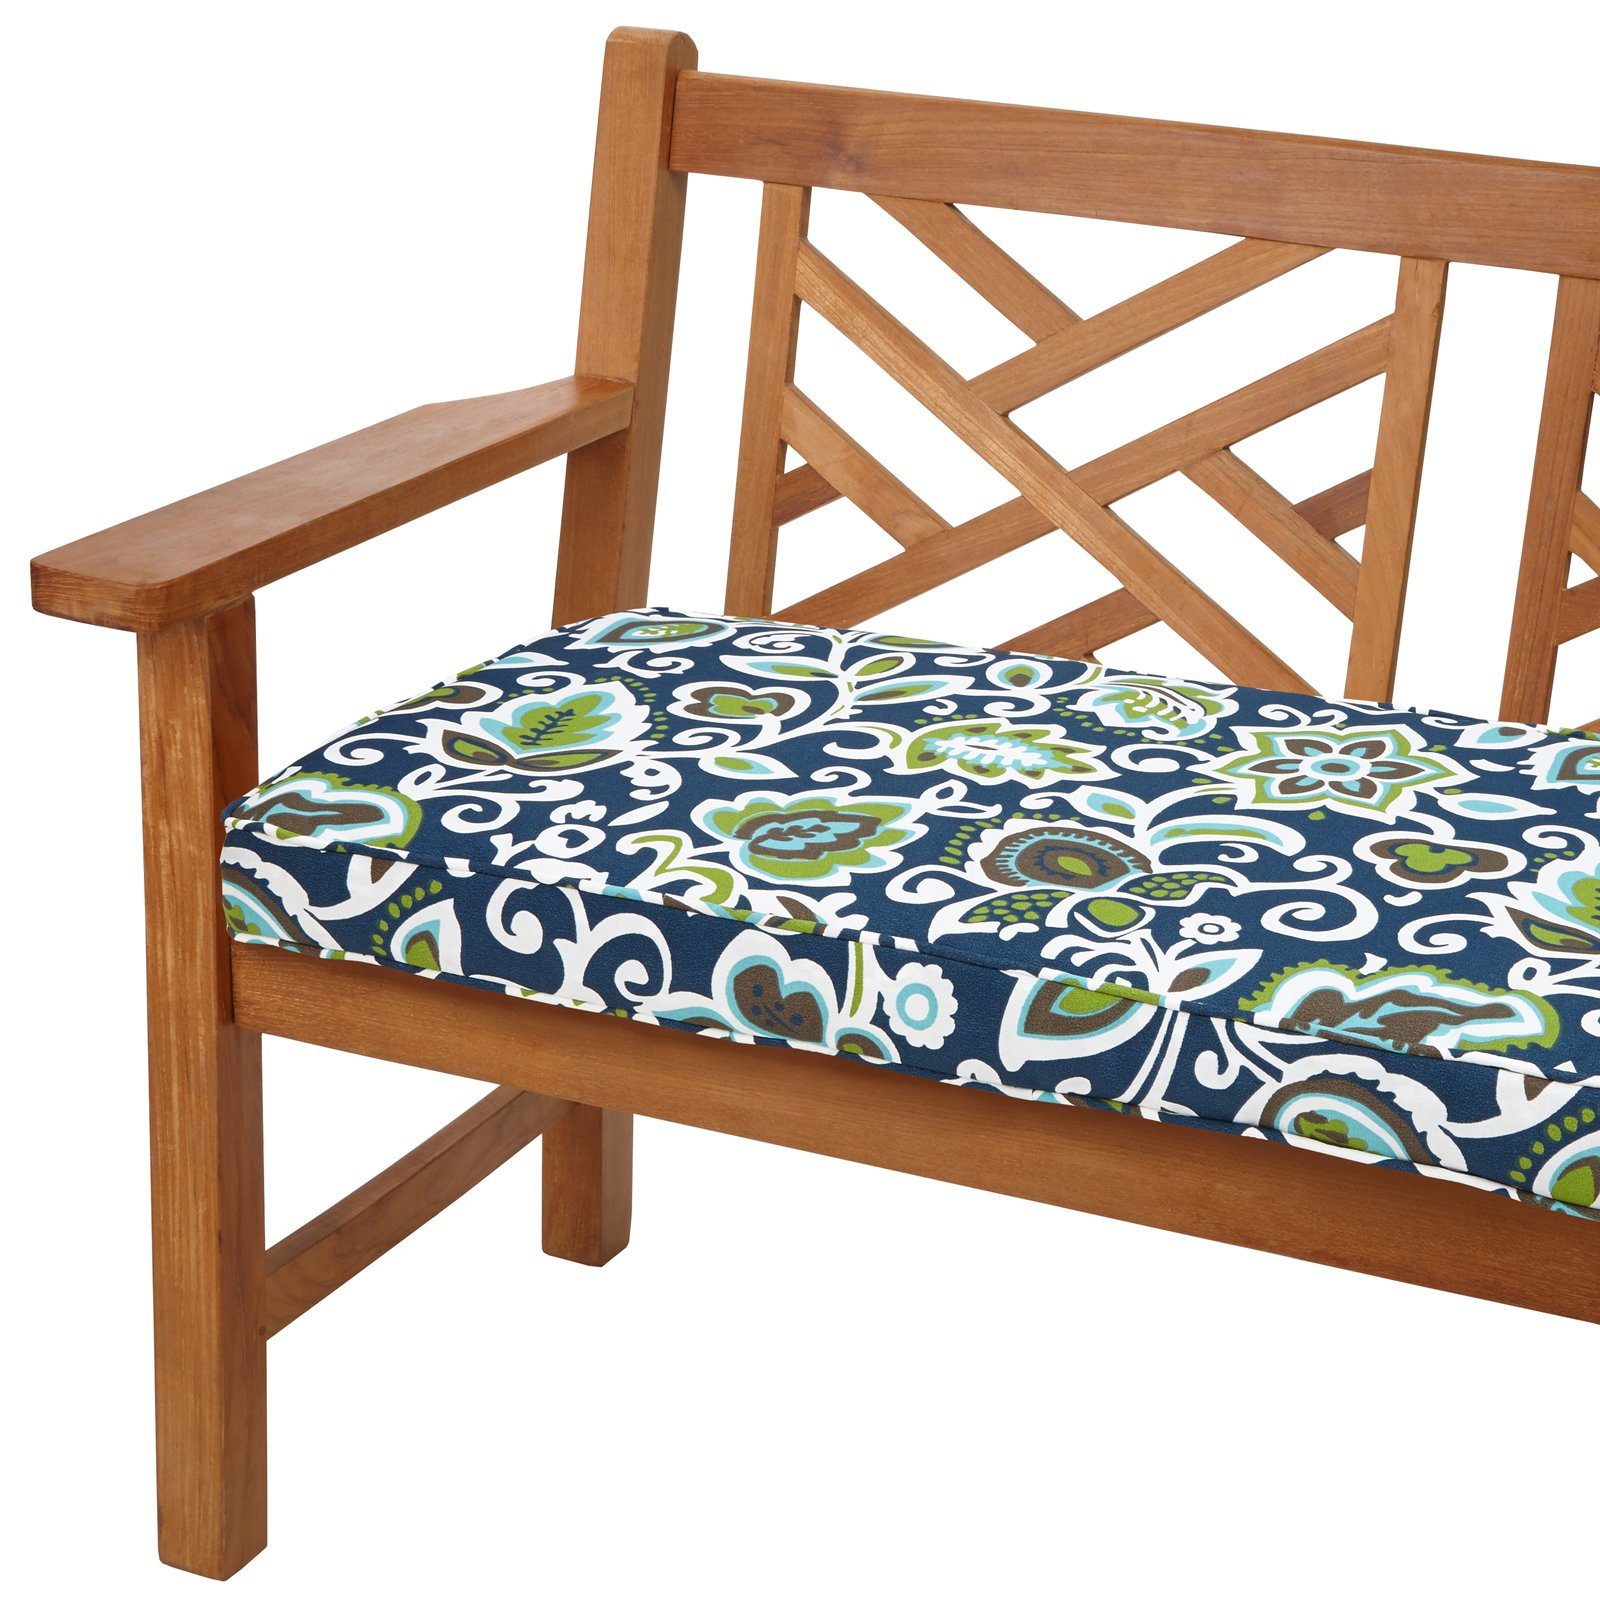 Mozaic Company Faxon Outdoor Corded Bench Cushion Products In 2019